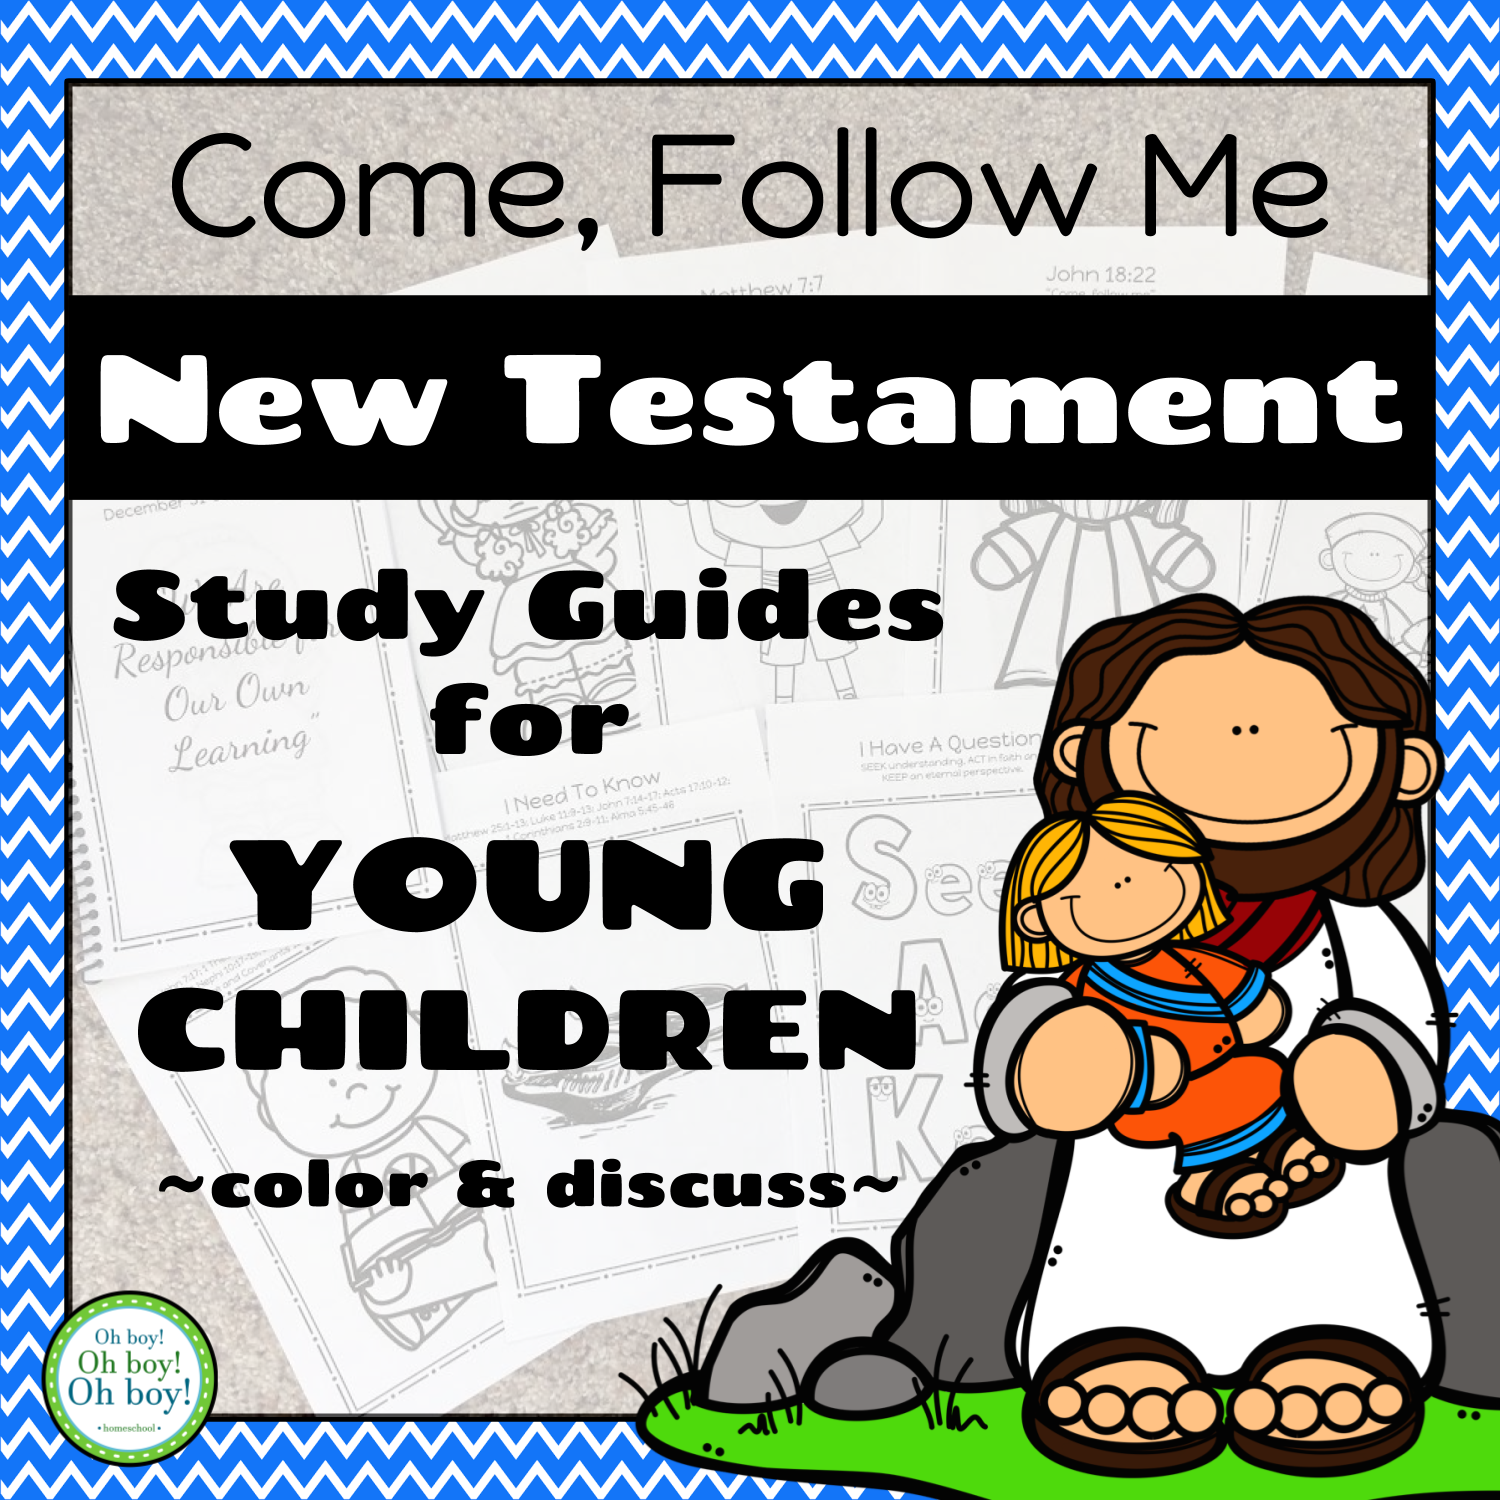 Pin by ChriLa on Coloring: Bible: NT: Gospels: Passion through Ascension |  Sunday school projects, Sunday school activities, Sunday school lessons